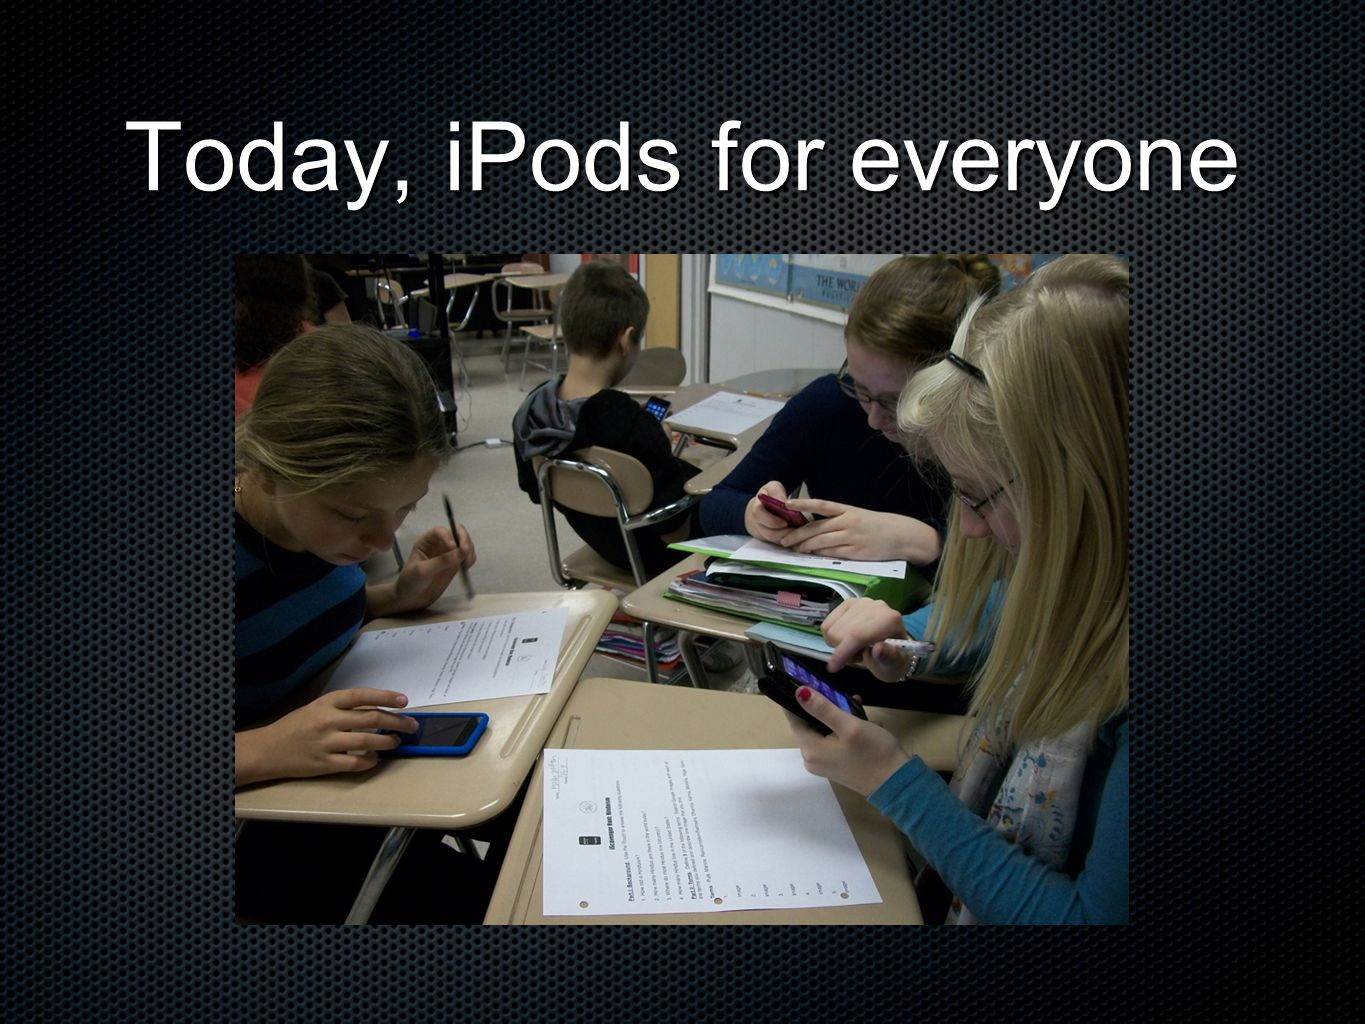 Today, iPods for everyone